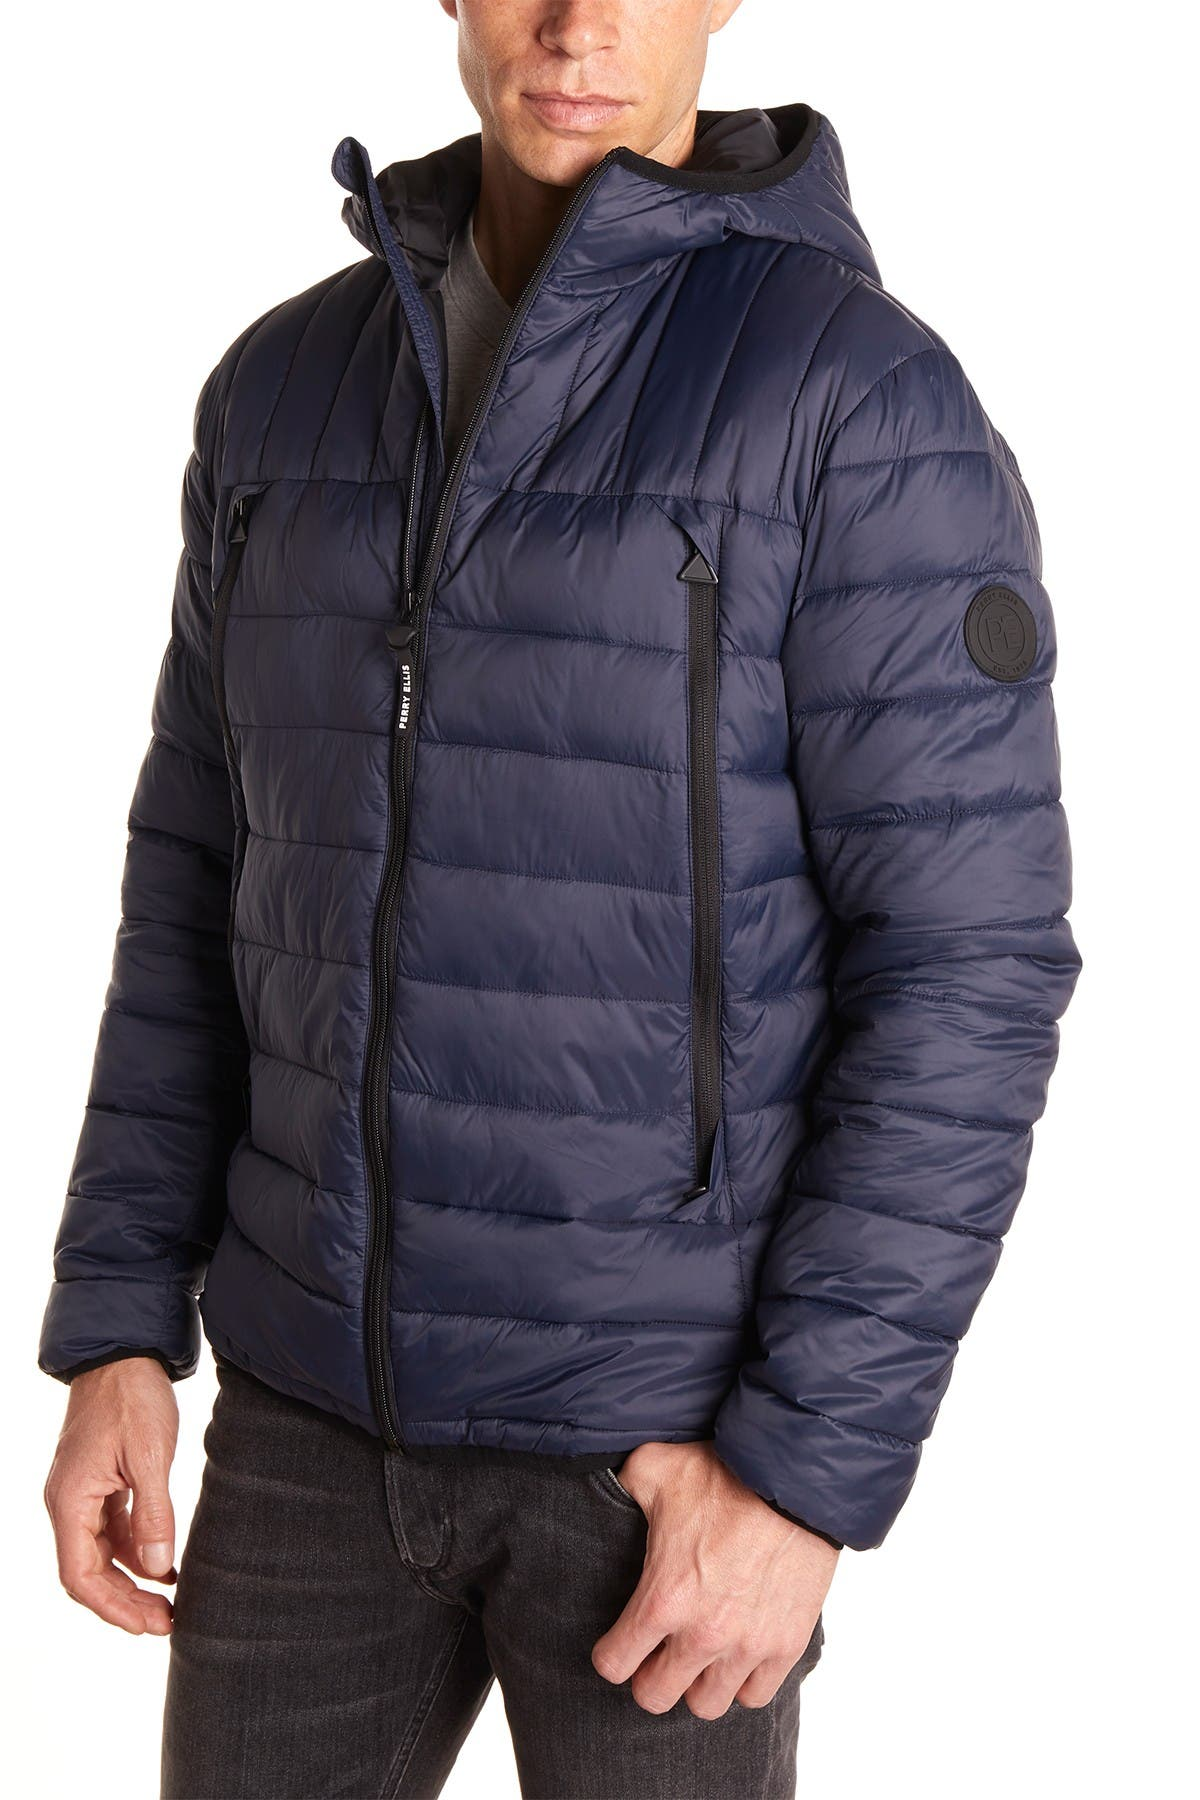 Image of Perry Ellis Nylon Packable Quilted Jacket